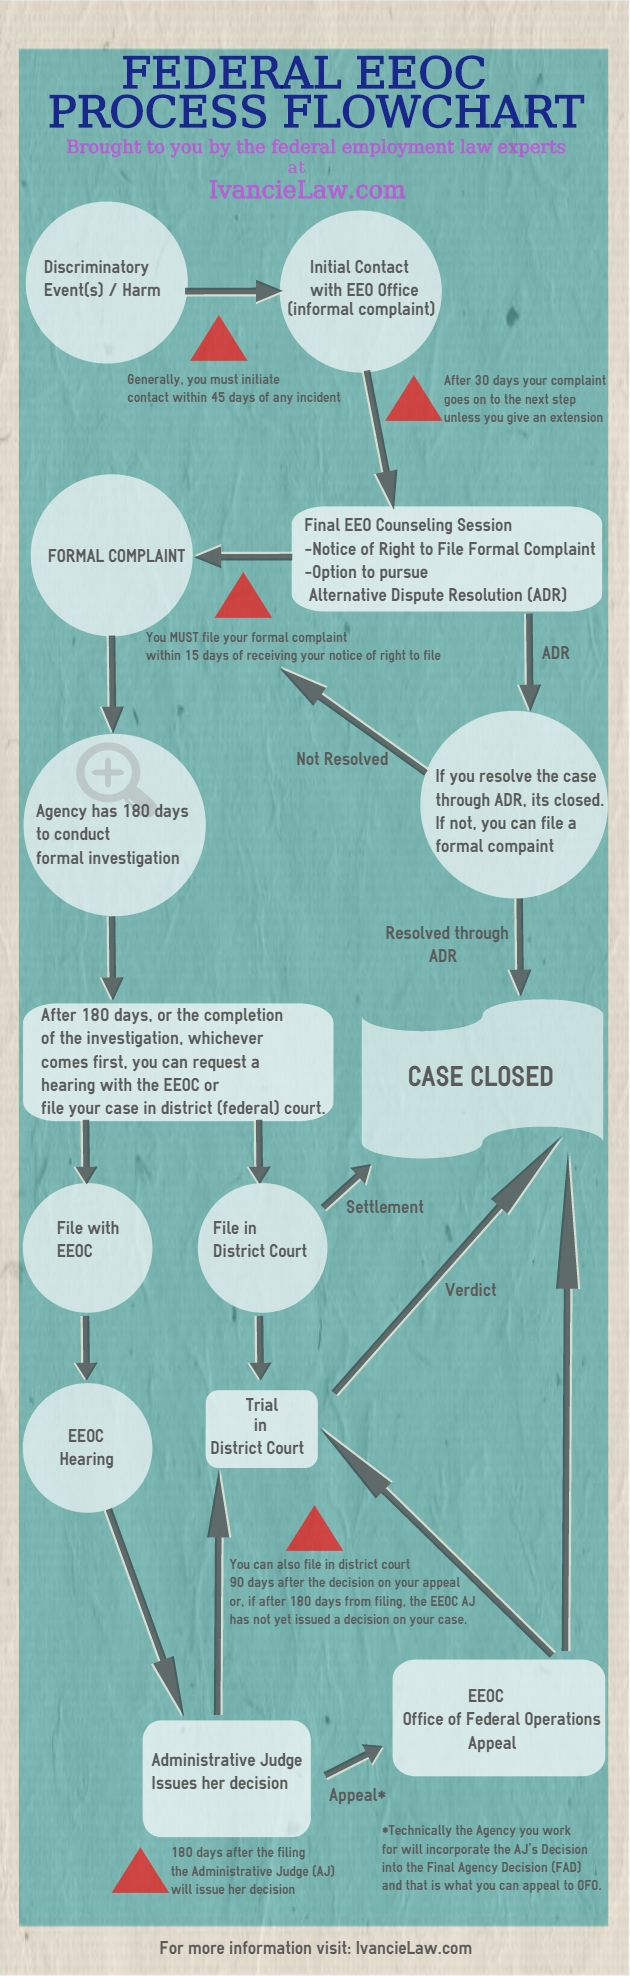 Federal eeoc process flow chart federal business and career search federal eeoc process flow chart nvjuhfo Gallery